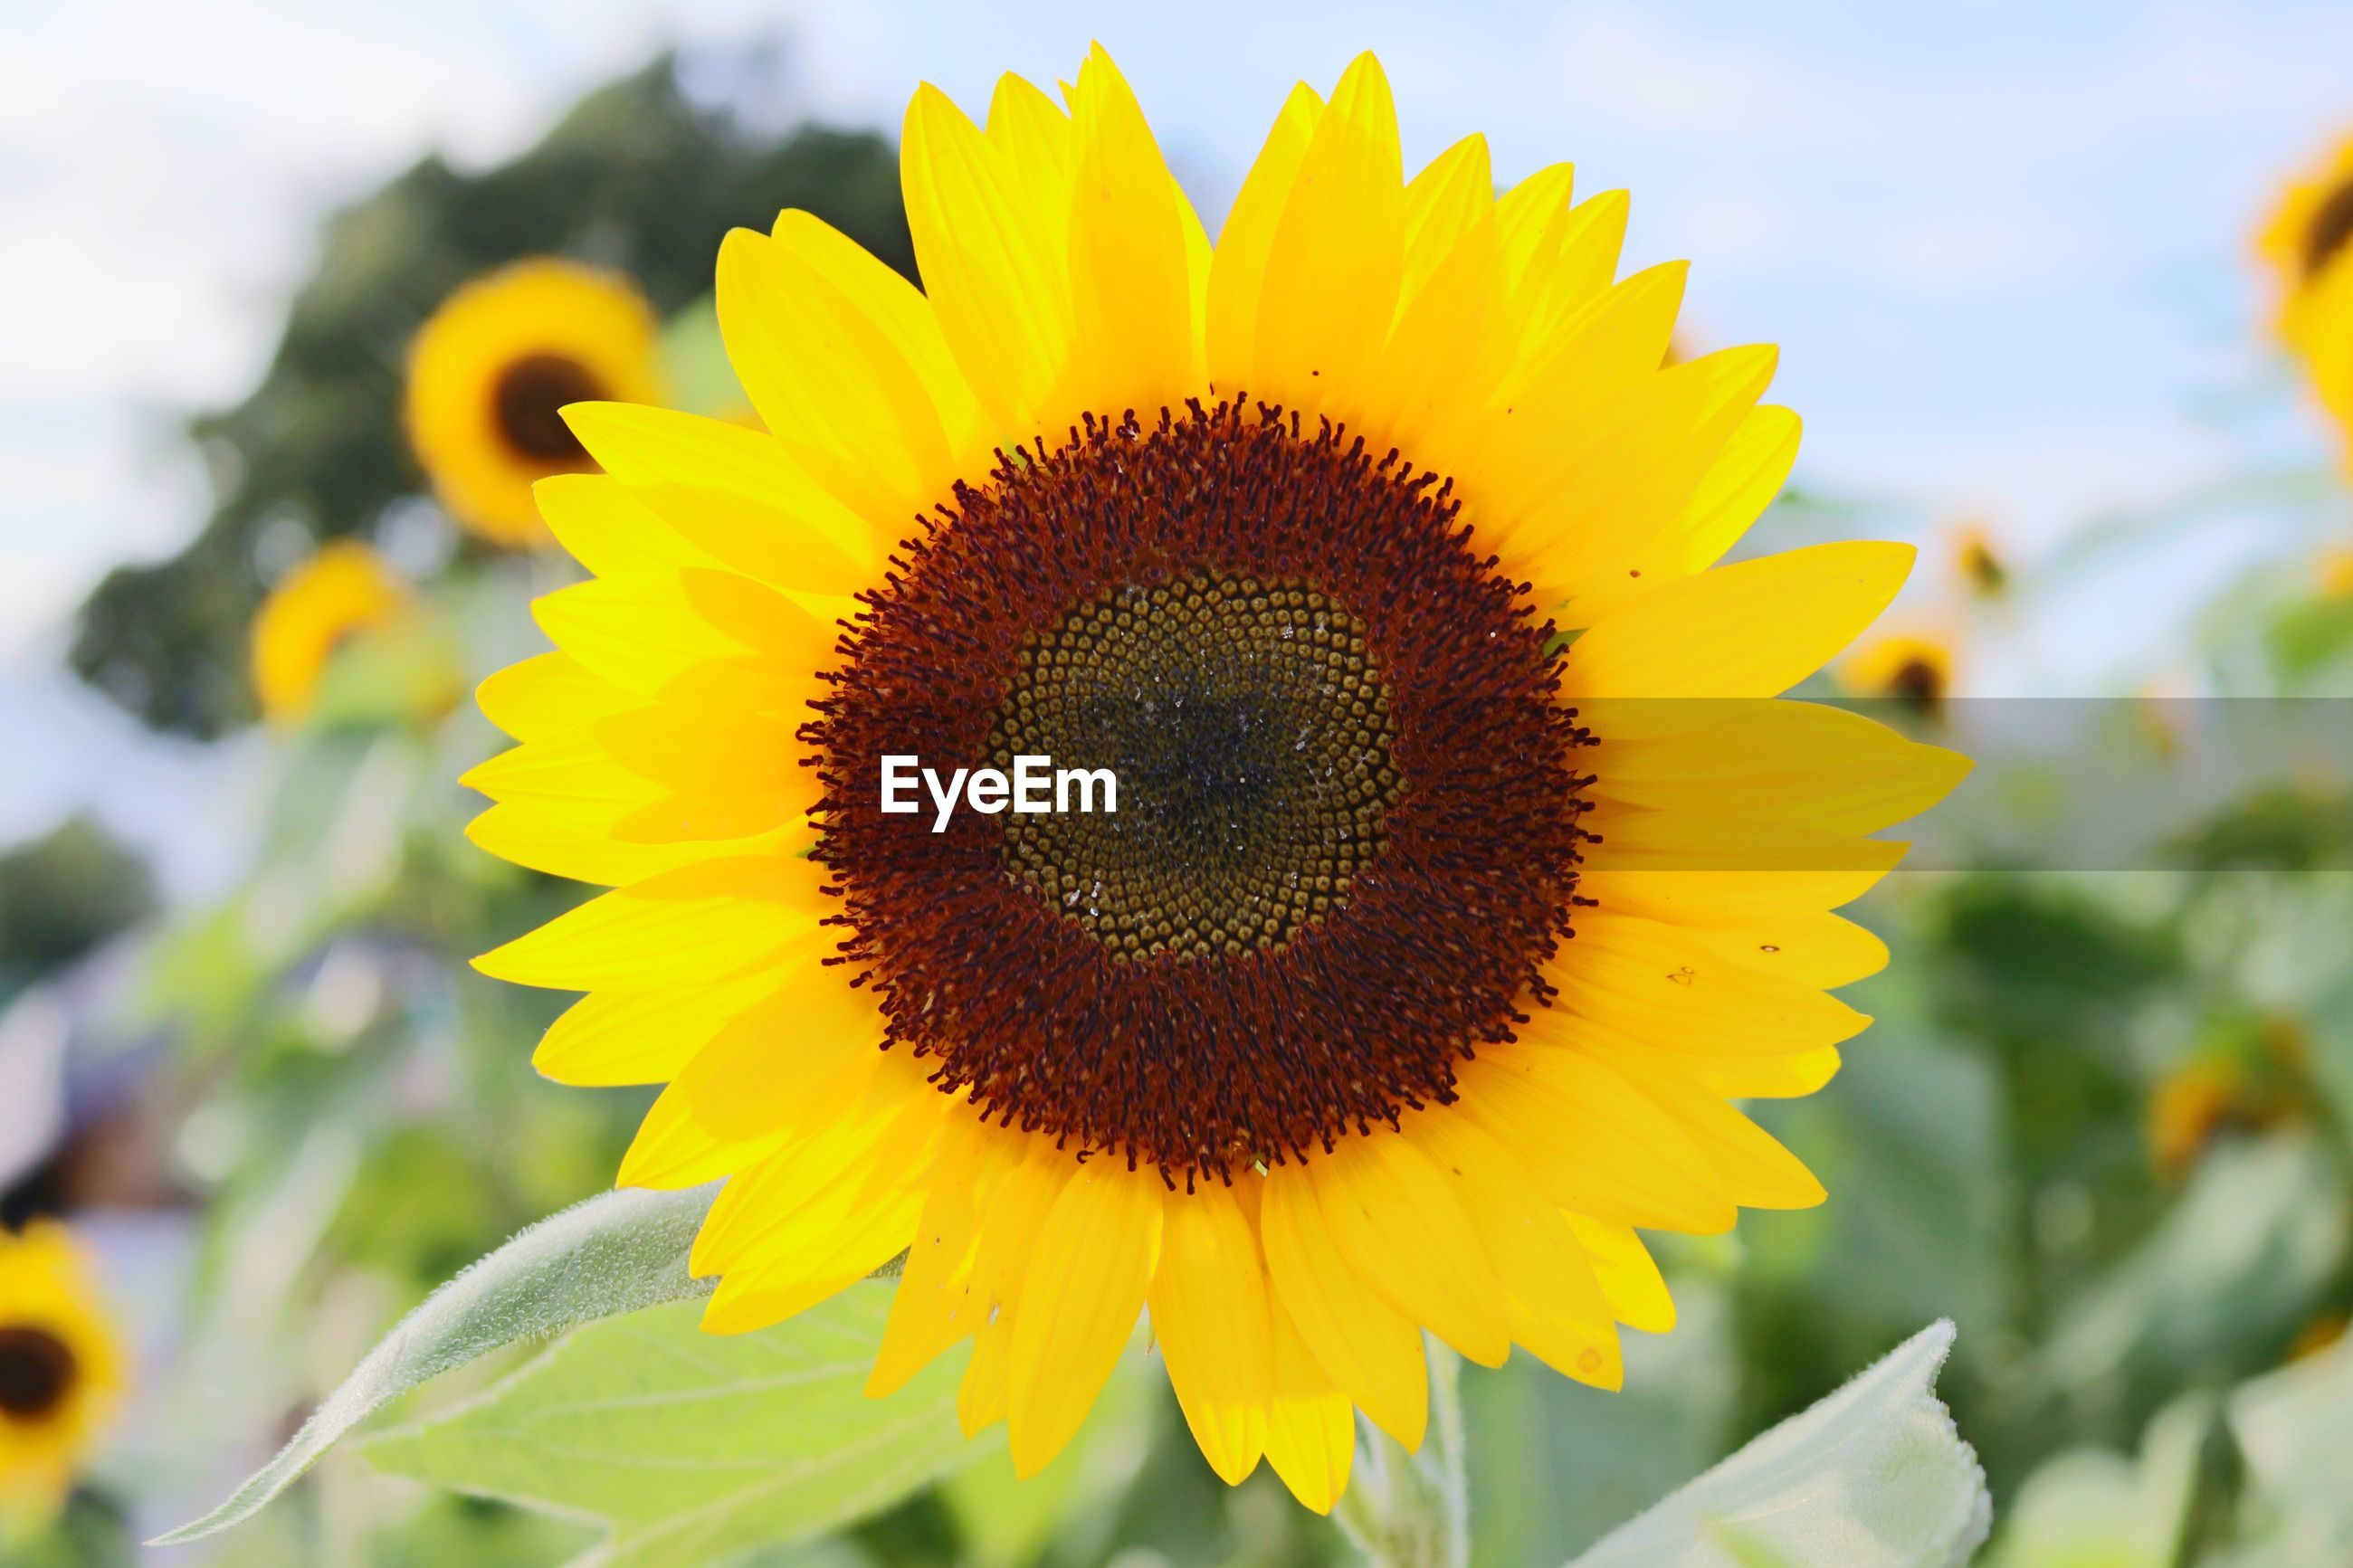 yellow, flower head, freshness, flower, fragility, petal, close-up, sunflower, beauty in nature, growth, nature, focus on foreground, vibrant color, pollen, plant, selective focus, macro, springtime, in bloom, blossom, softness, single flower, day, bloom, botany, outdoors, extreme close up, exoticism, no people, soft focus